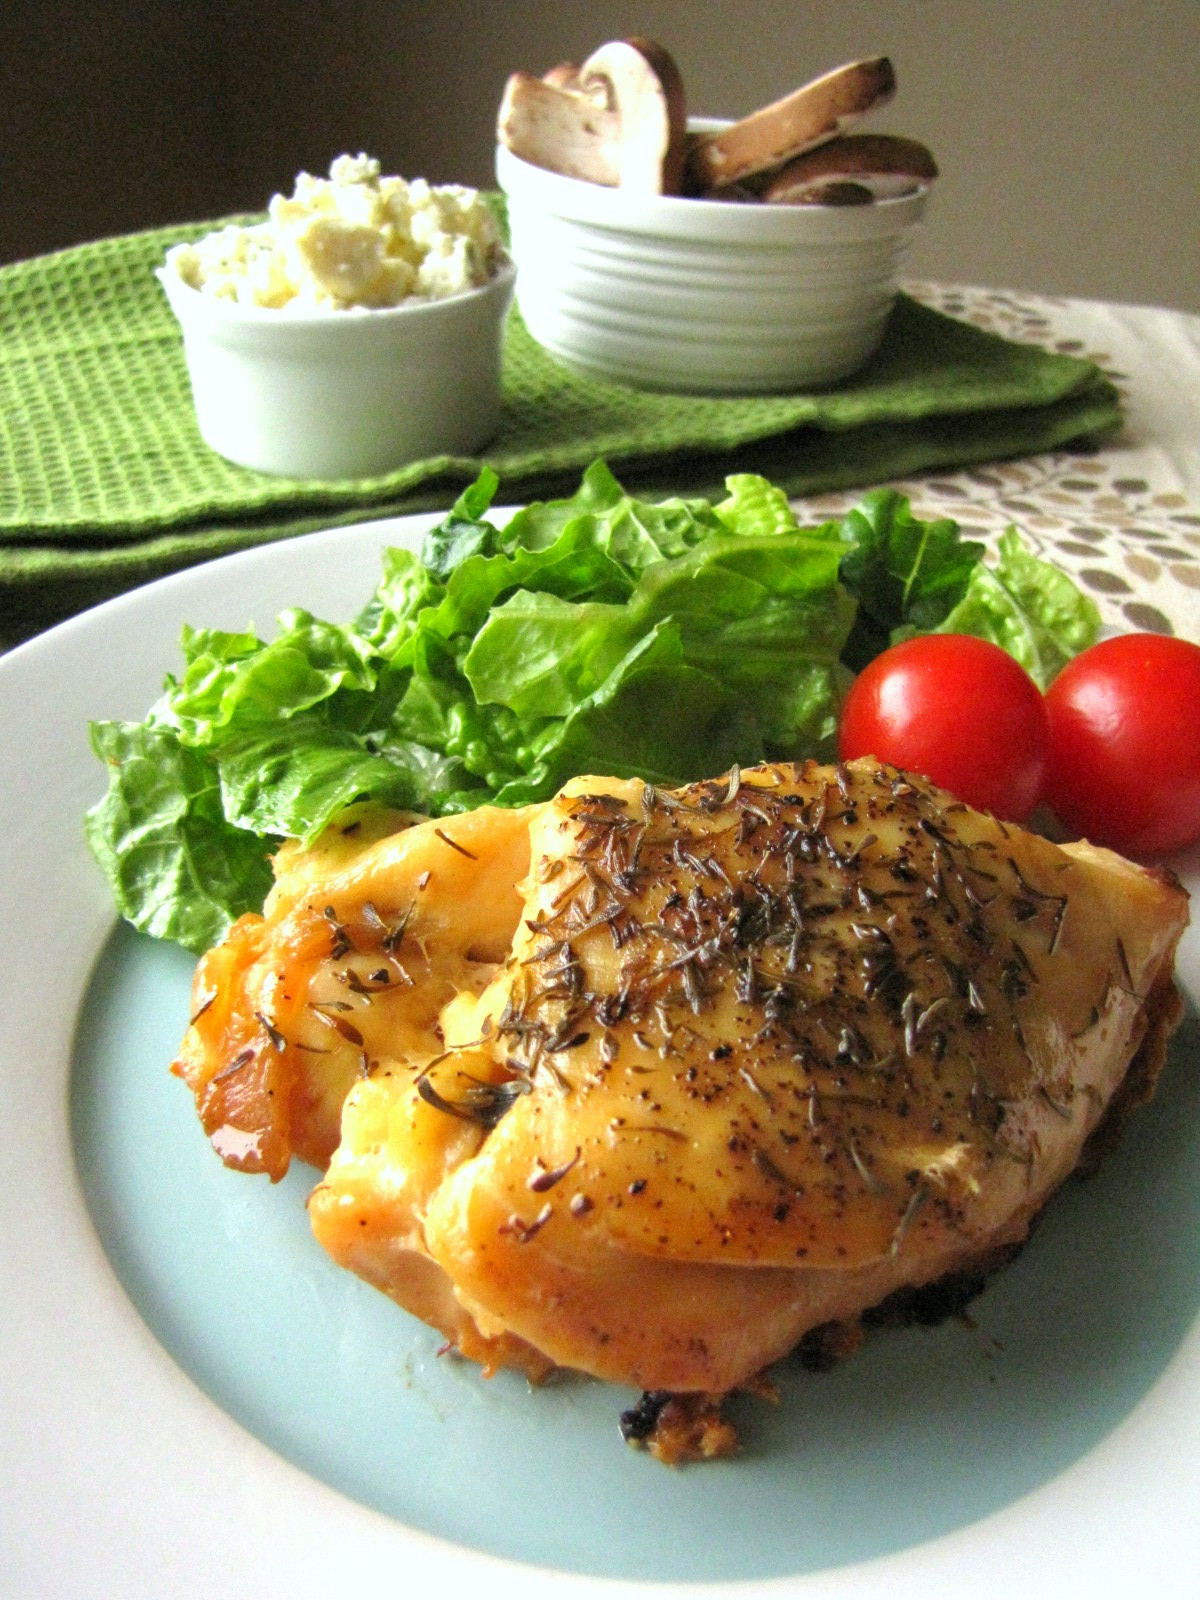 Chicken Breasts In Slow Cooker  Slow Cooker Stuffed Chicken Breasts with Gorgonzola and